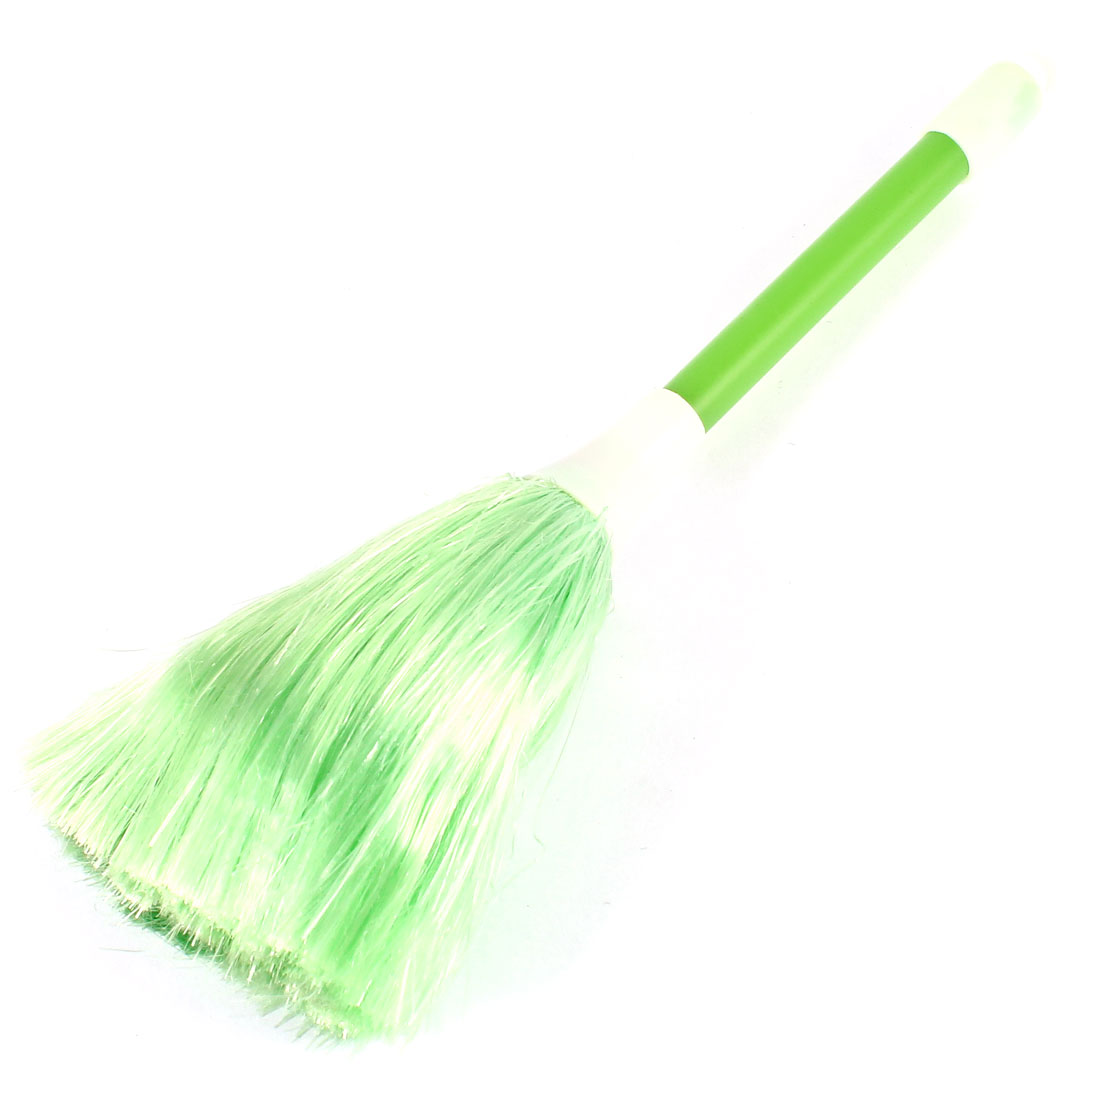 Computer PC Laptop Keyboard TV Camera Cleanner Brush Cleaning Dust Brush Green White 21cm Long